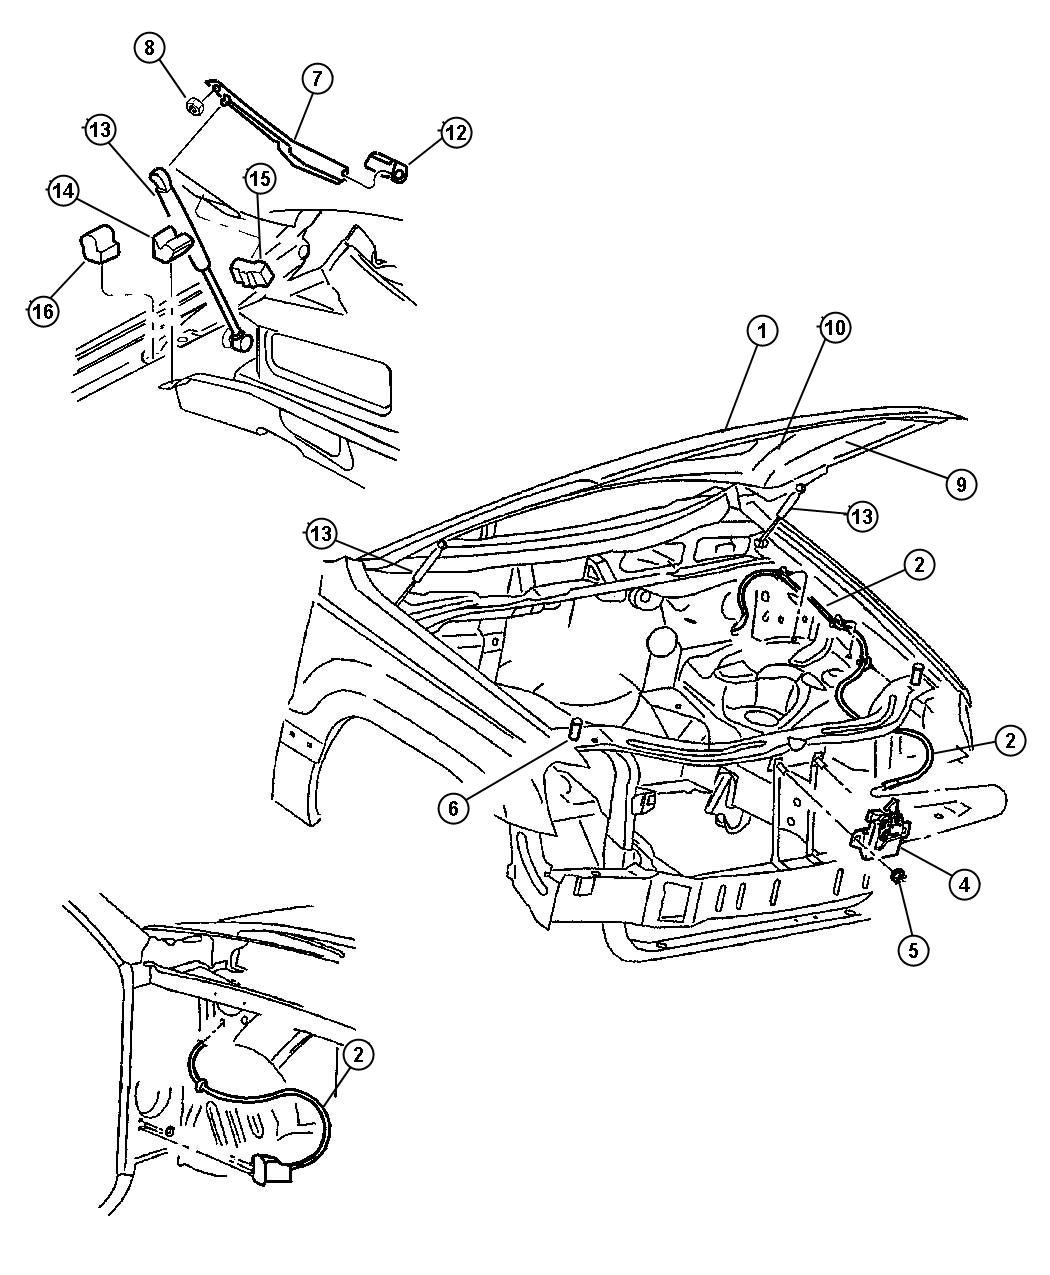 Caution Do Not Allow Valve Body Plate To Separate From Upper Valve Body During Removal Or Check Balls And Strainer May Fall Out additionally 2004 Jeep Grand Cherokee Hood Latch Diagram as well Slot car history5 furthermore Pages moreover Battery Tips And Cares. on simple car diagram